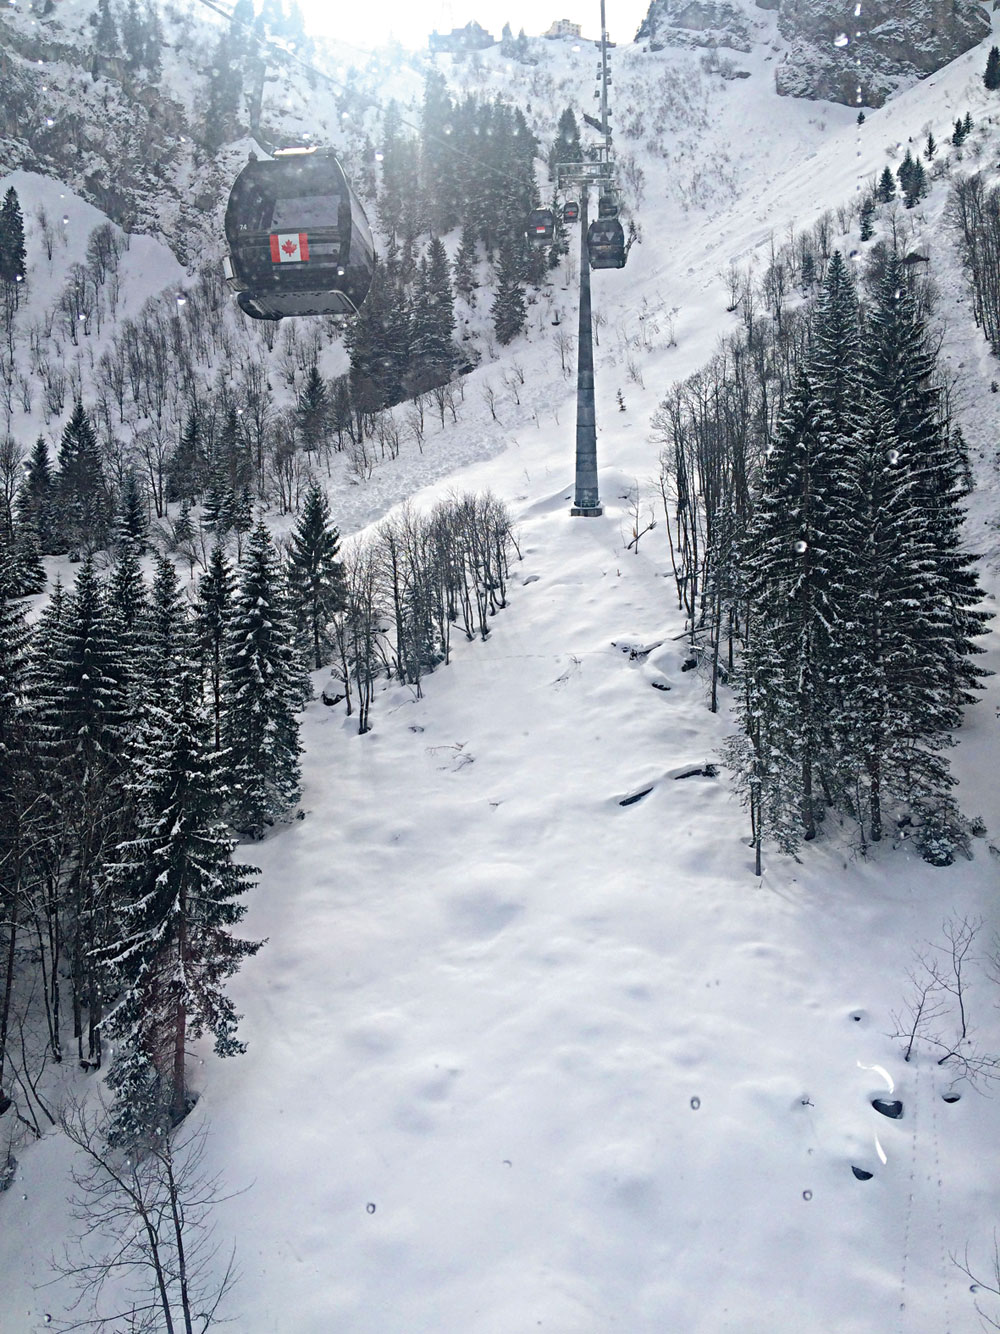 The cable car gives imposing views of the lofty Mount Titlis